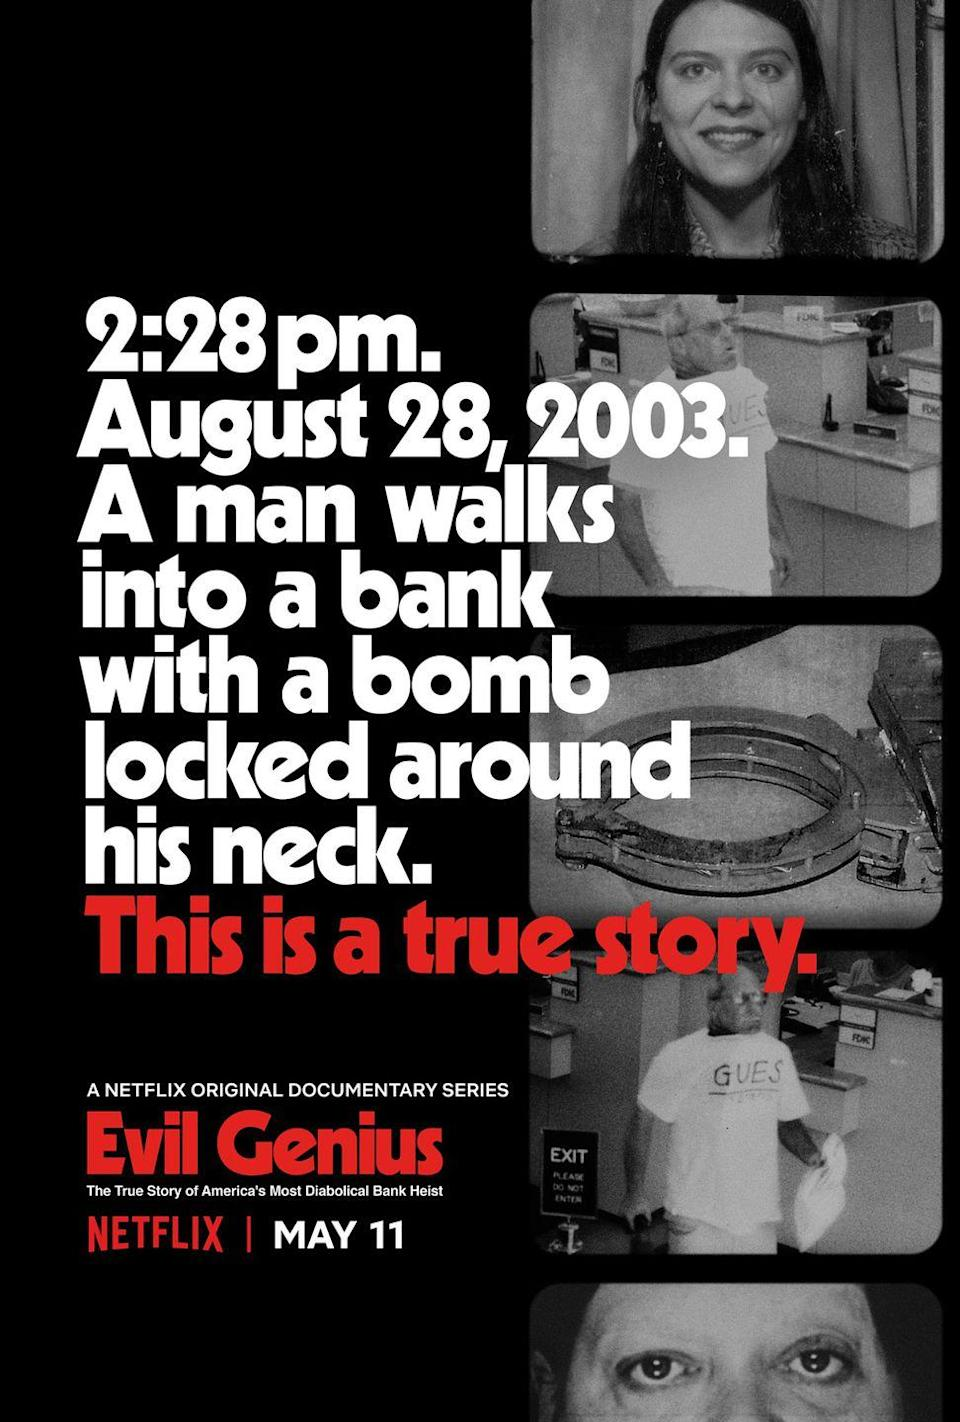 """<p>One day, a man walked into a bank with a bomb locked around his neck, demanding money. It sounds like a twisted twist on the """"A man walked into a bar…"""" joke, but with a not-so-funny ending. Spoiler alert: It, uh, didn't end well for him. And that was all before two more bodies mysteriously turned up. Even the police were like, """"WTF."""" Who's the """"evil genius"""" behind this dark game? You'll just have to watch to find out.</p><p><a class=""""link rapid-noclick-resp"""" href=""""https://www.netflix.com/title/80158319"""" rel=""""nofollow noopener"""" target=""""_blank"""" data-ylk=""""slk:Watch Now"""">Watch Now</a></p>"""